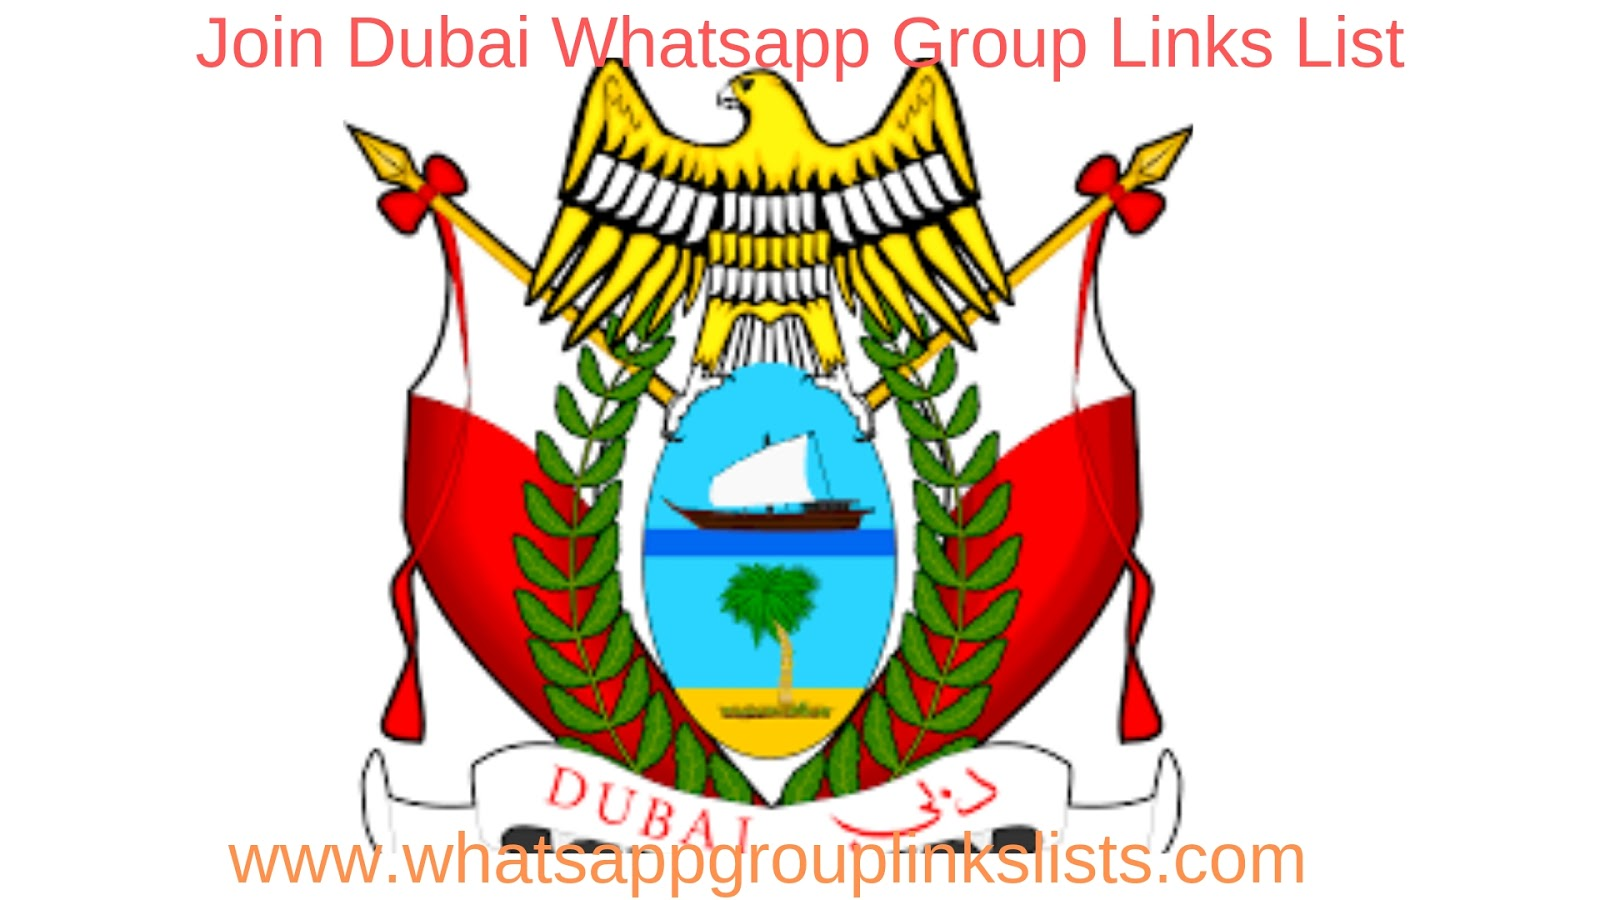 Join Dubai Whatsapp Group Links List